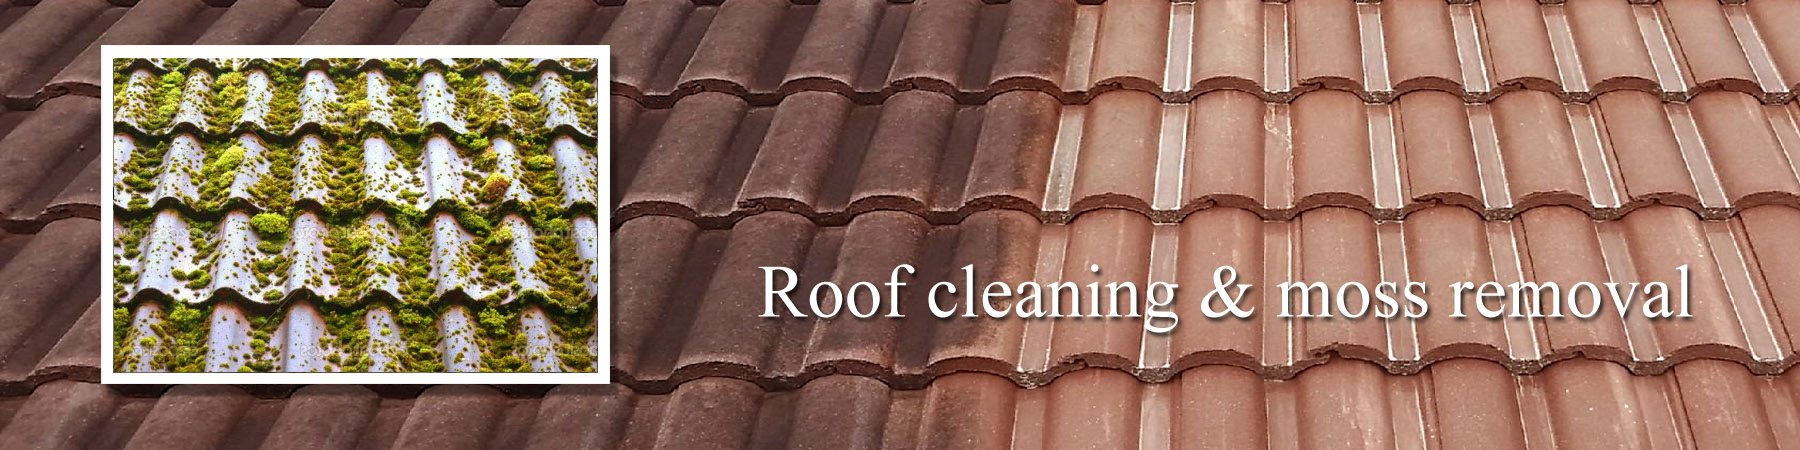 J.R. Roof Cleaning New Cross roof moss removal repairs & coating J R Cleaning